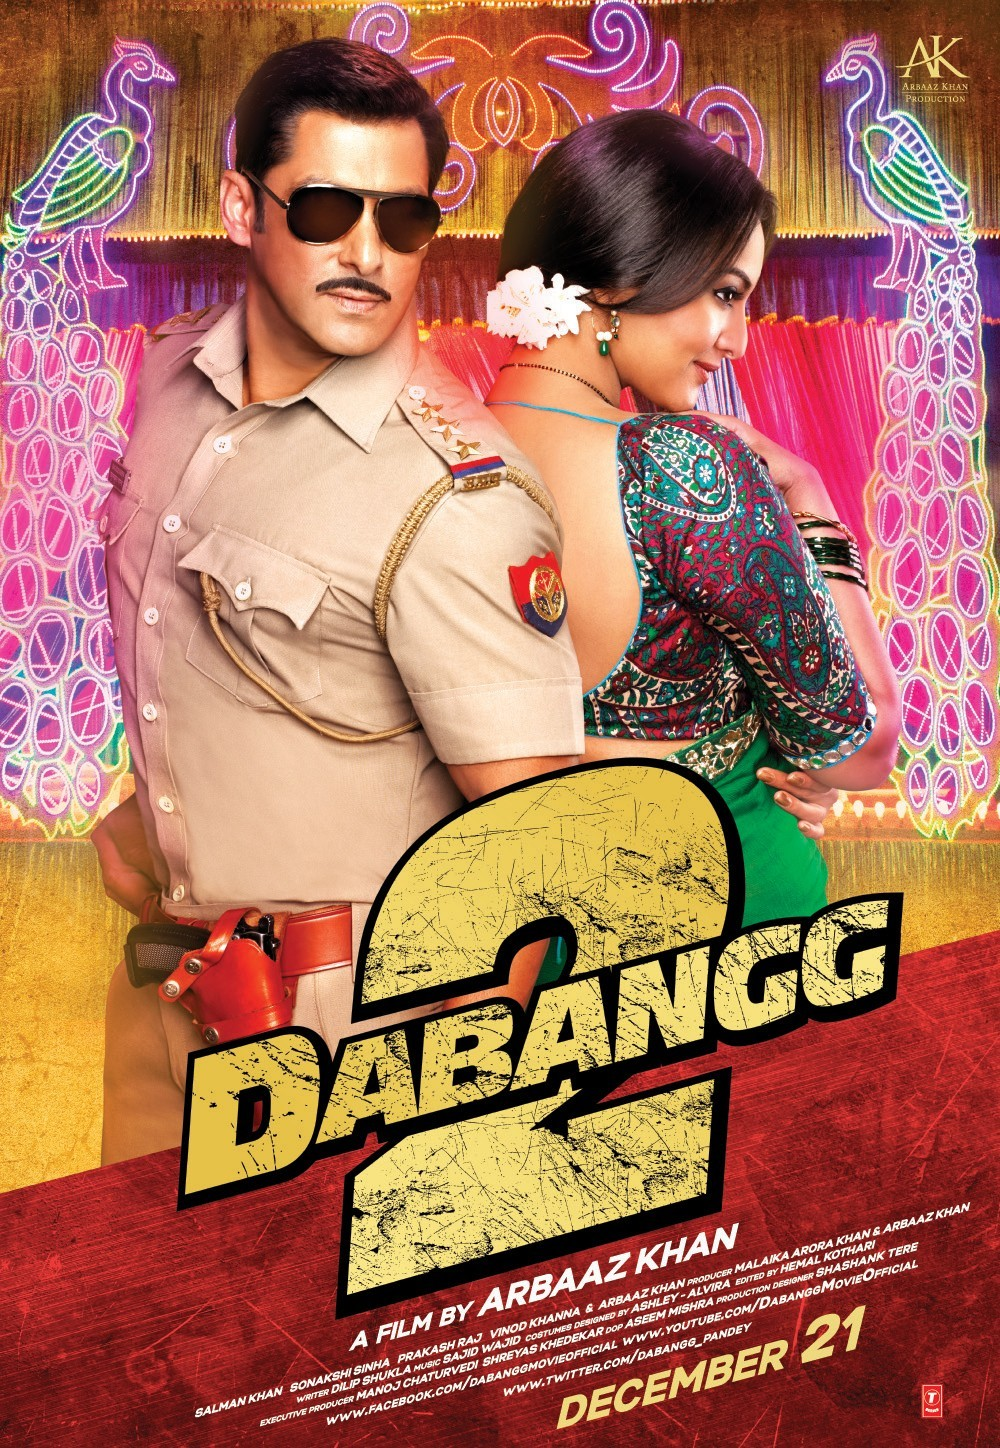 Dabangg 2 Picture 3  Dabangg 2 Movie Poster